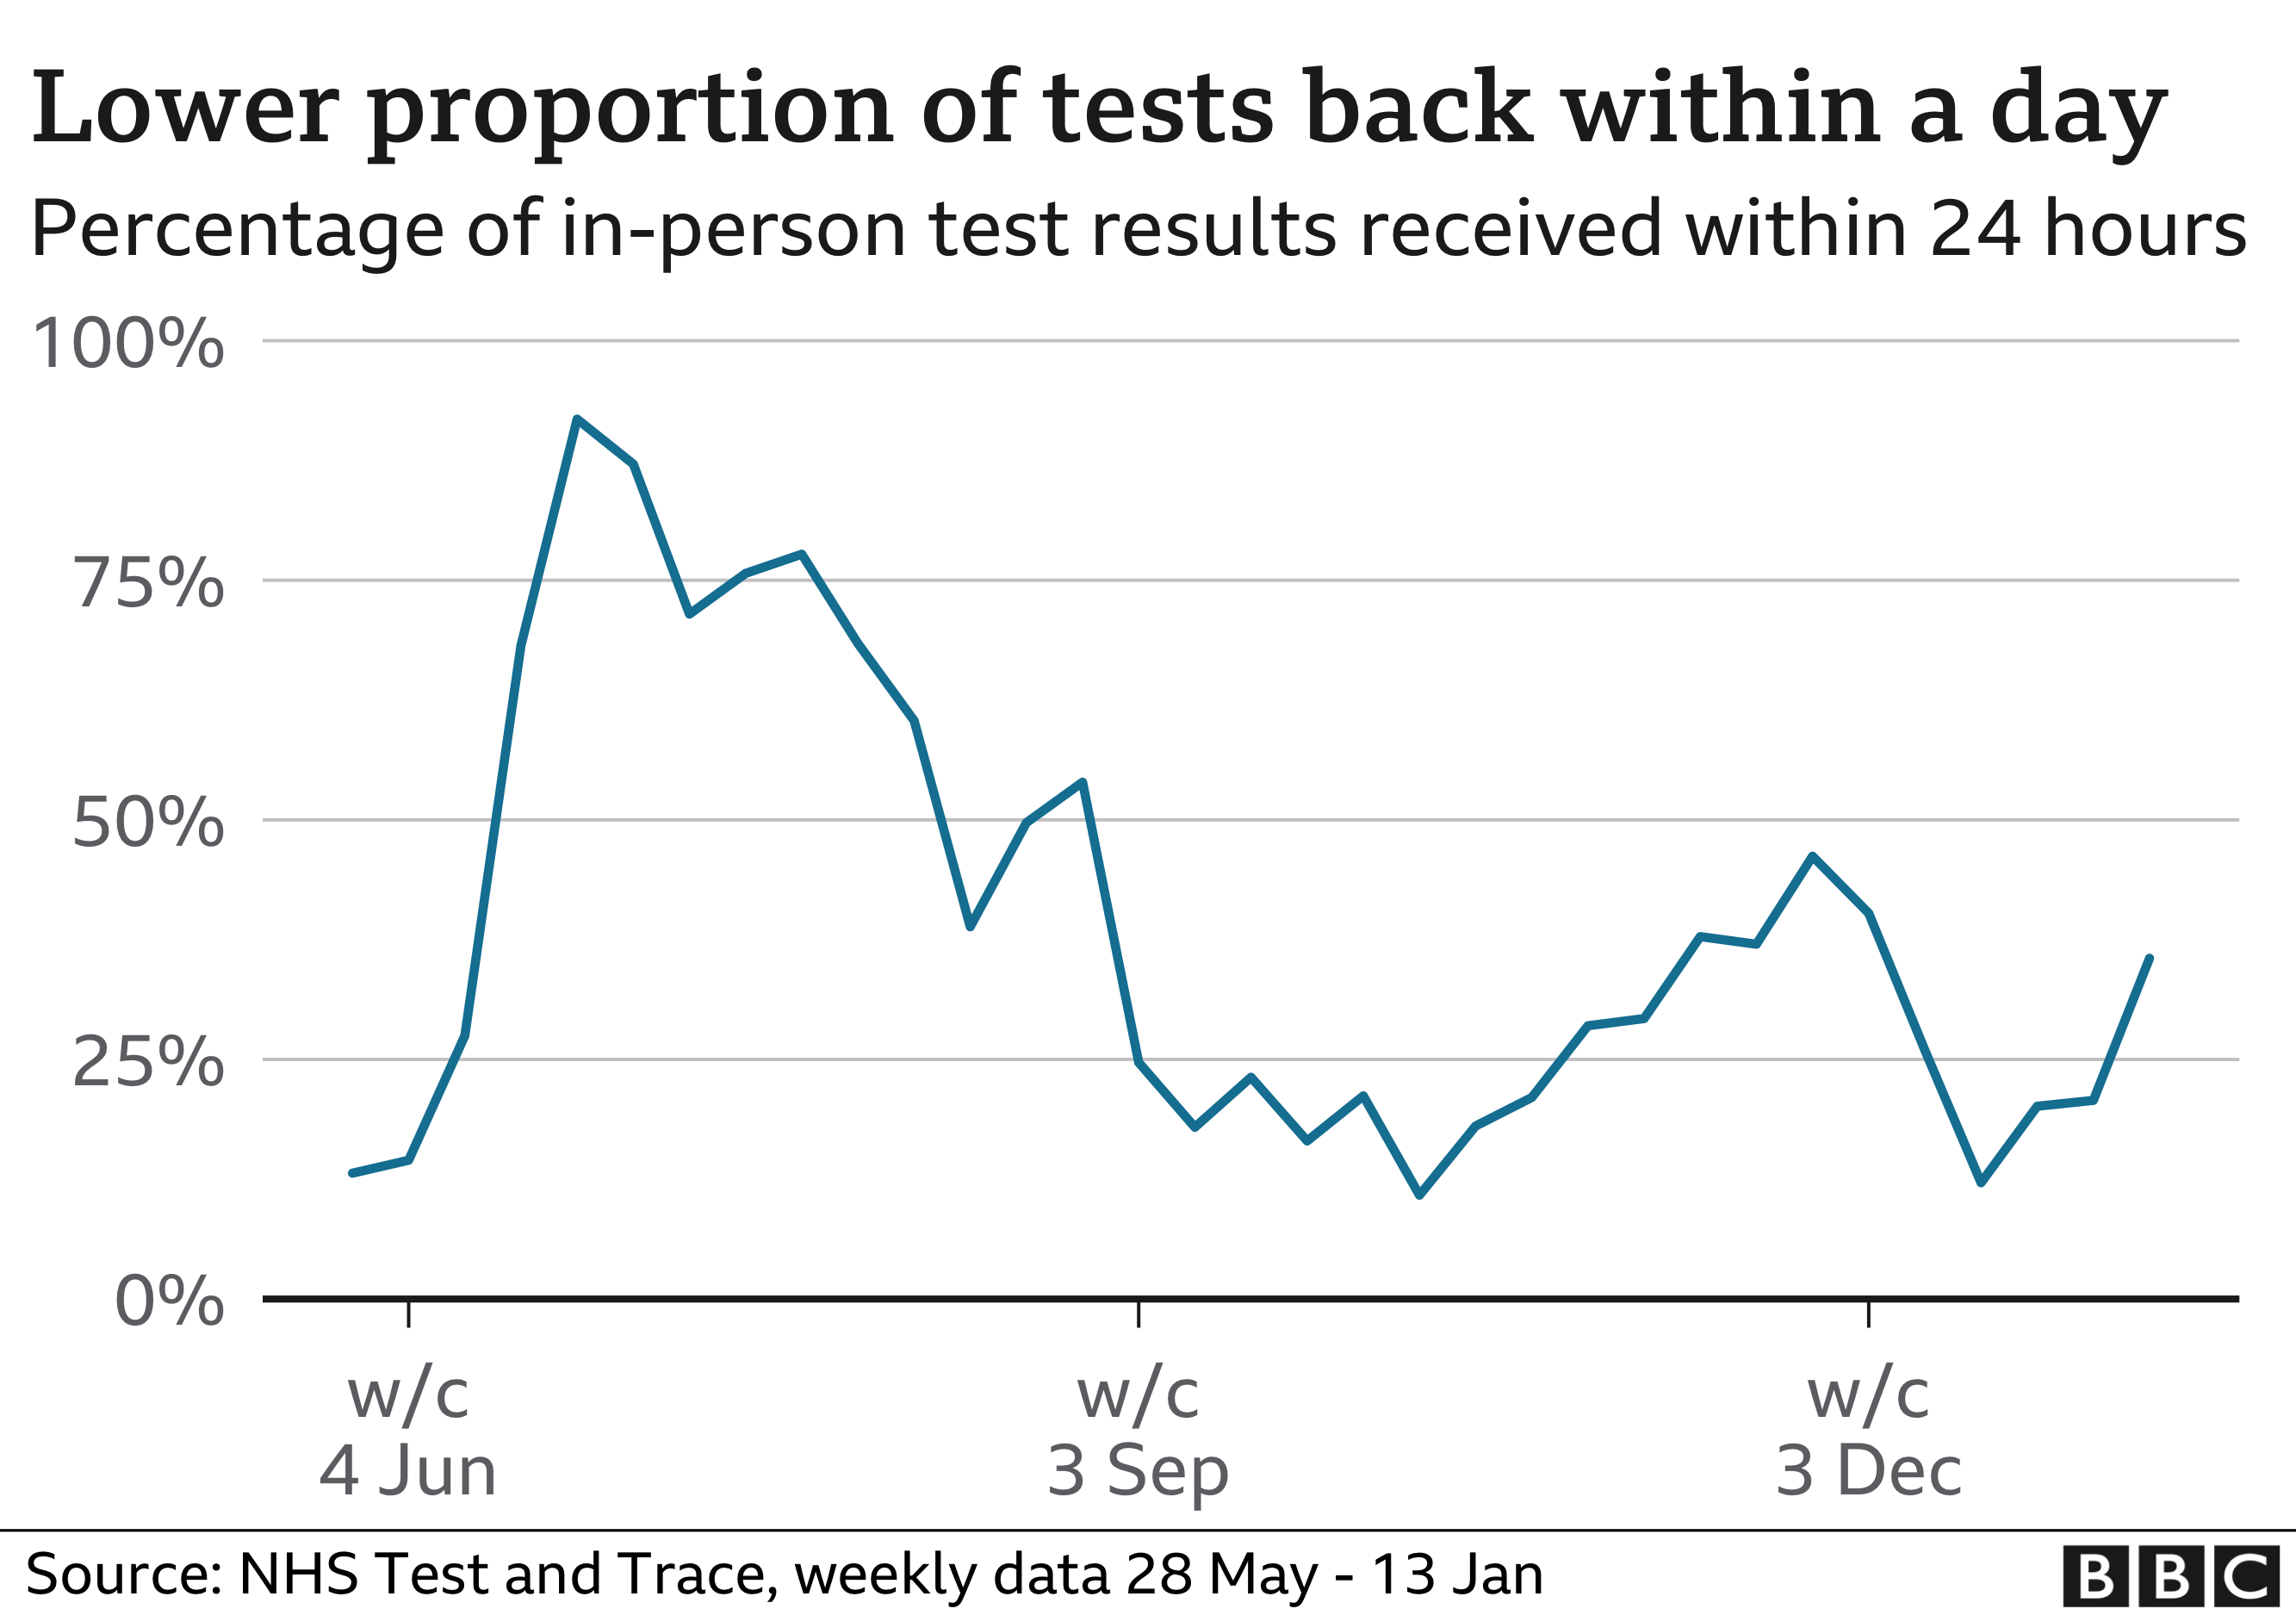 Lower proportion of tests back within a day